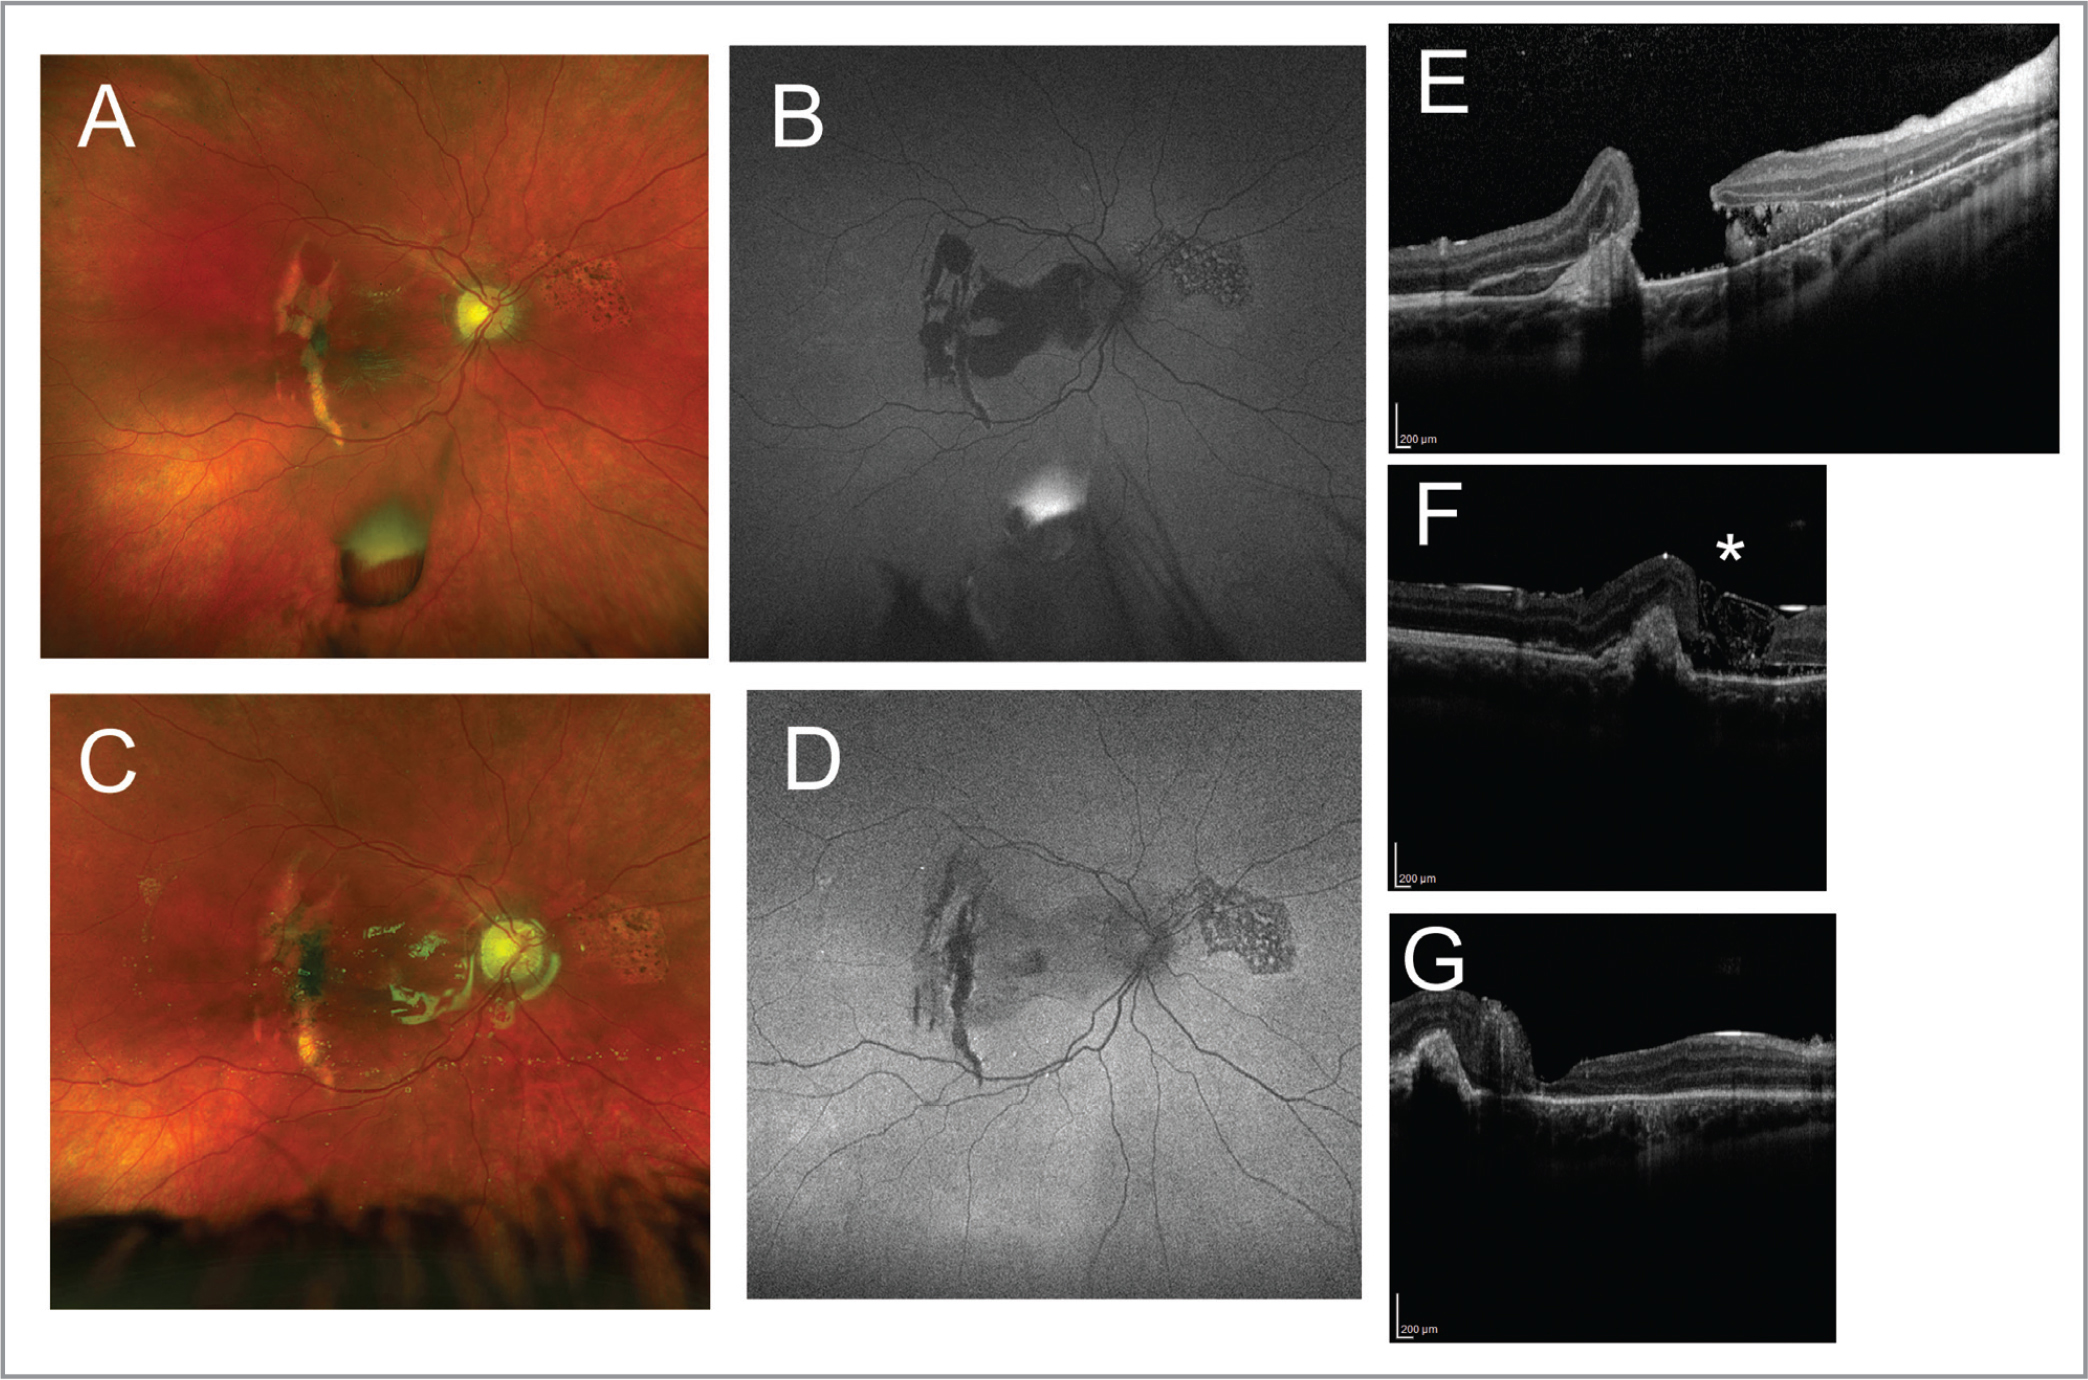 An 11-year-old male with large traumatic macula hole (MH) associated with choroidal rupture and subretinal hemorrhage (SRH) failed to have hole closure with 6 weeks of observation. It measured 941 μm at its smallest diameter and 4,403 μm at its largest diameter at the base, including subretinal fluid. Ultrawide-field color fundus photography before (A) and 1 month after (C) MH repair with modified Karabas technique with silicone oil tamponade and 1-week face-down positioning. Ultrawide-field fundus autofluorescence before (B) and 1 month after (D) MH repair showed reduction in macular hypoautofluorescence after drainage of SRH and closure of MH. Spectral-domain optical coherence tomography (SD-OCT) horizontal foveal raster scans before (E) surgery show large MH with SRH associated with choroidal rupture. SD-OCT scans 1 day (F) and 1 month (G) shows ILM flap (*) is replaced by photoreceptors with continued healing. Preoperative visual acuity improved from 20/400 to 20/100 at 4 months postoperatively. See Supplemental Video 1, available at www.healio.com/OSLIRetina.